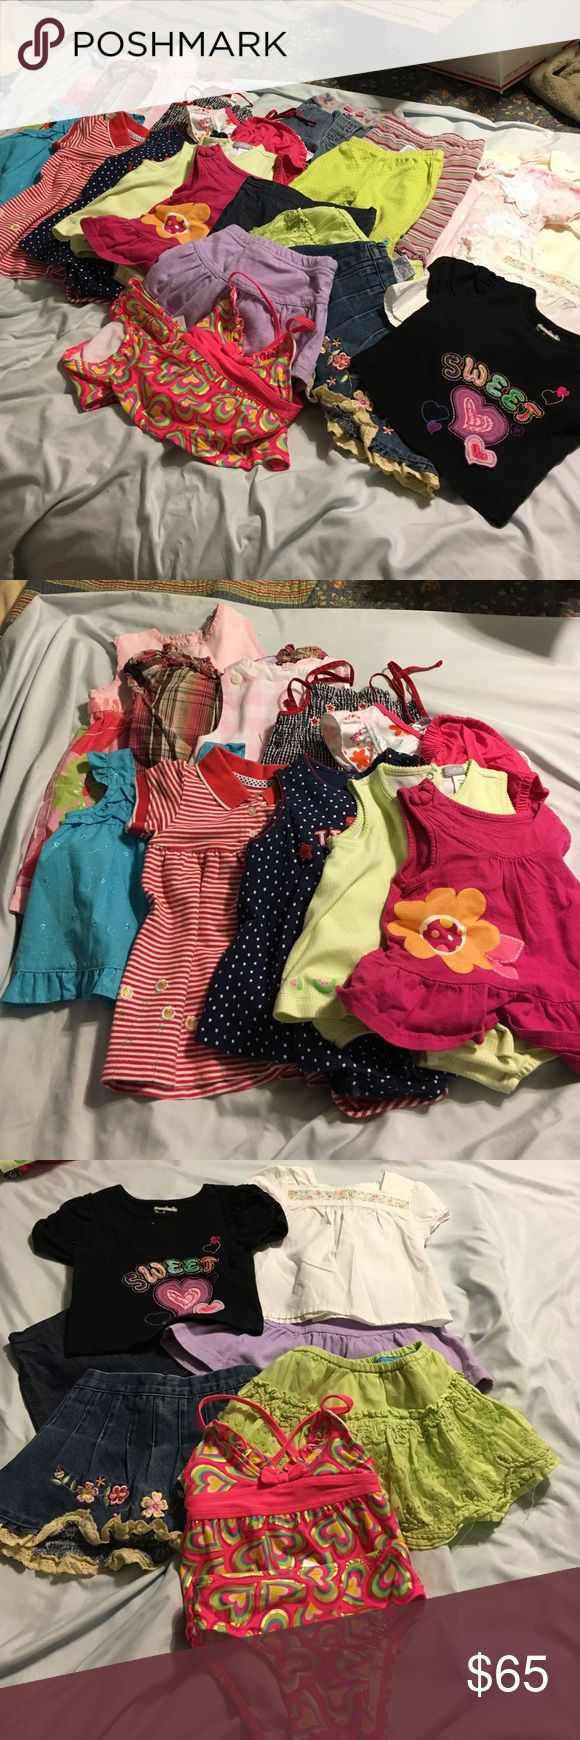 Huge Bundle 22 items. Girls 12 month. 1st impression cream pjs. Lili Paris floral coverall. Carters jeans. Carters green polka dot leggings. TCP striped leggings. Joe boxer bathing suit. Osh Kosh blouse. Garanimals tee. TCP green skirt. Koala kids purple skirt. Denim skirt. Denim shorts. Faded glory pink top. Carters green gingham jumper. Carter USA jumper. Al & Ray blue top. Fisher price floral dress. Blue gingham sundress. Florence Eisman sundress. Exhilaration plaid dress. Carters striped…